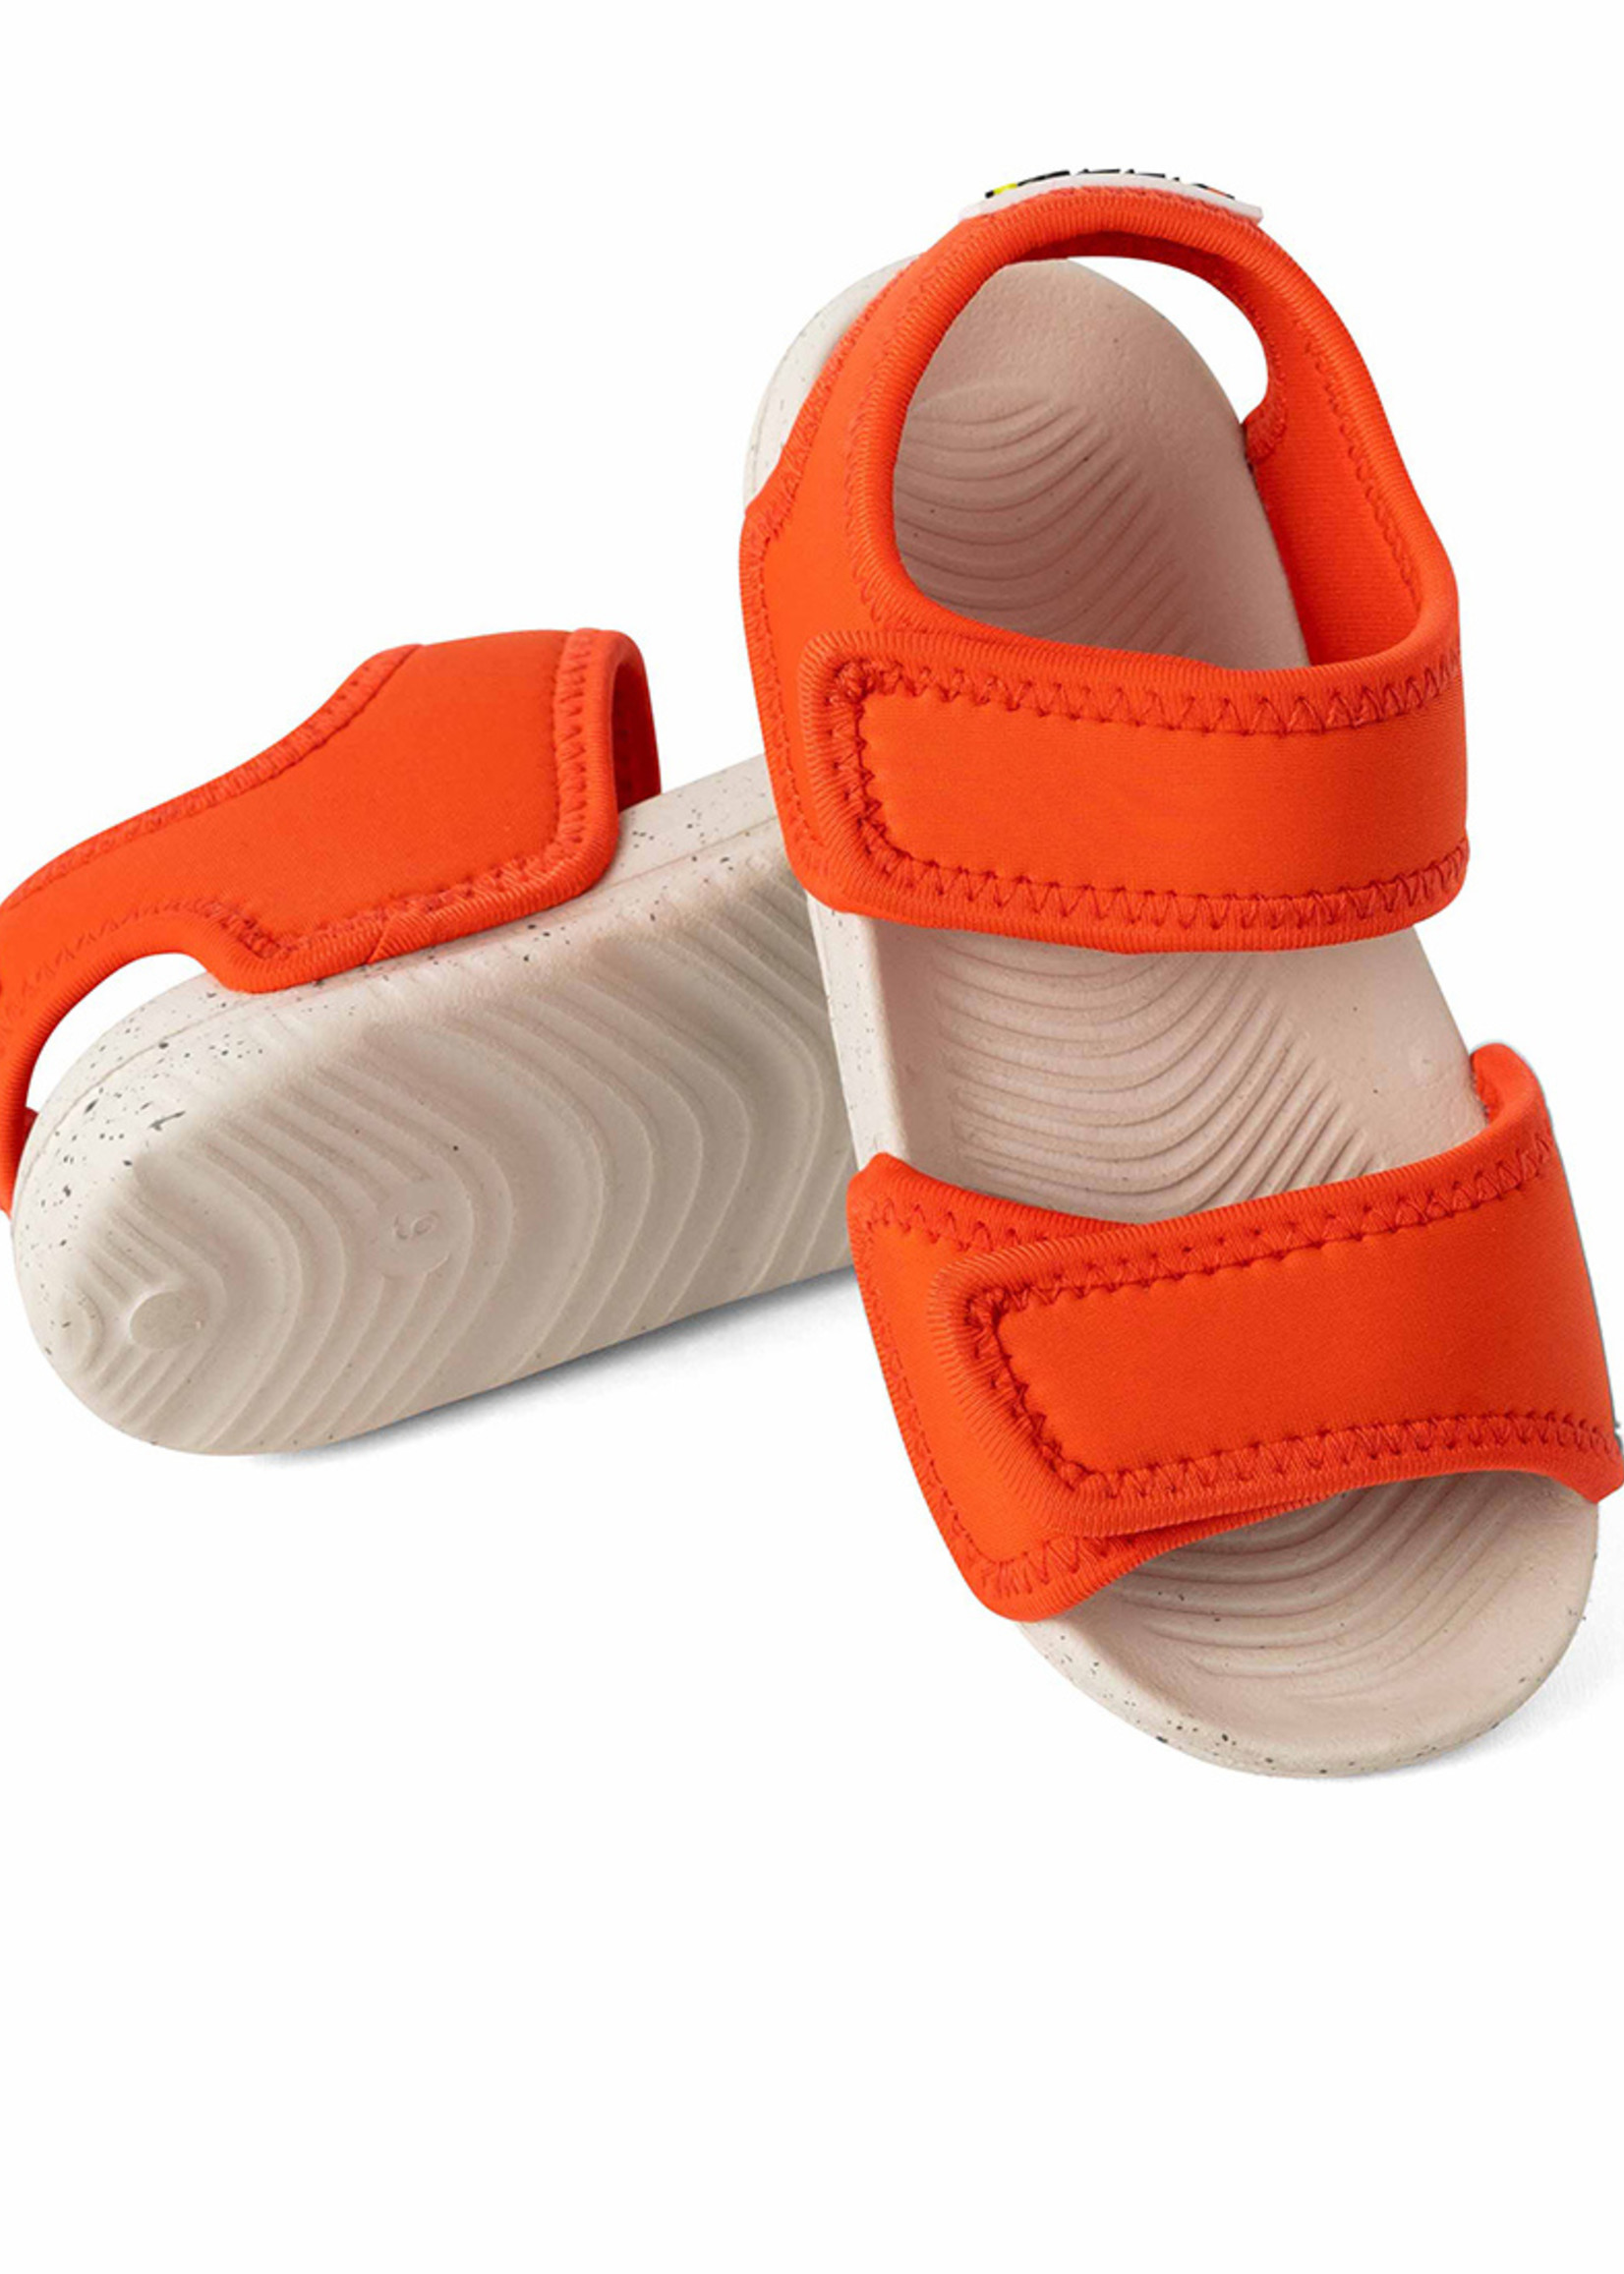 Minnow Designs Roamii Water Play Sandal